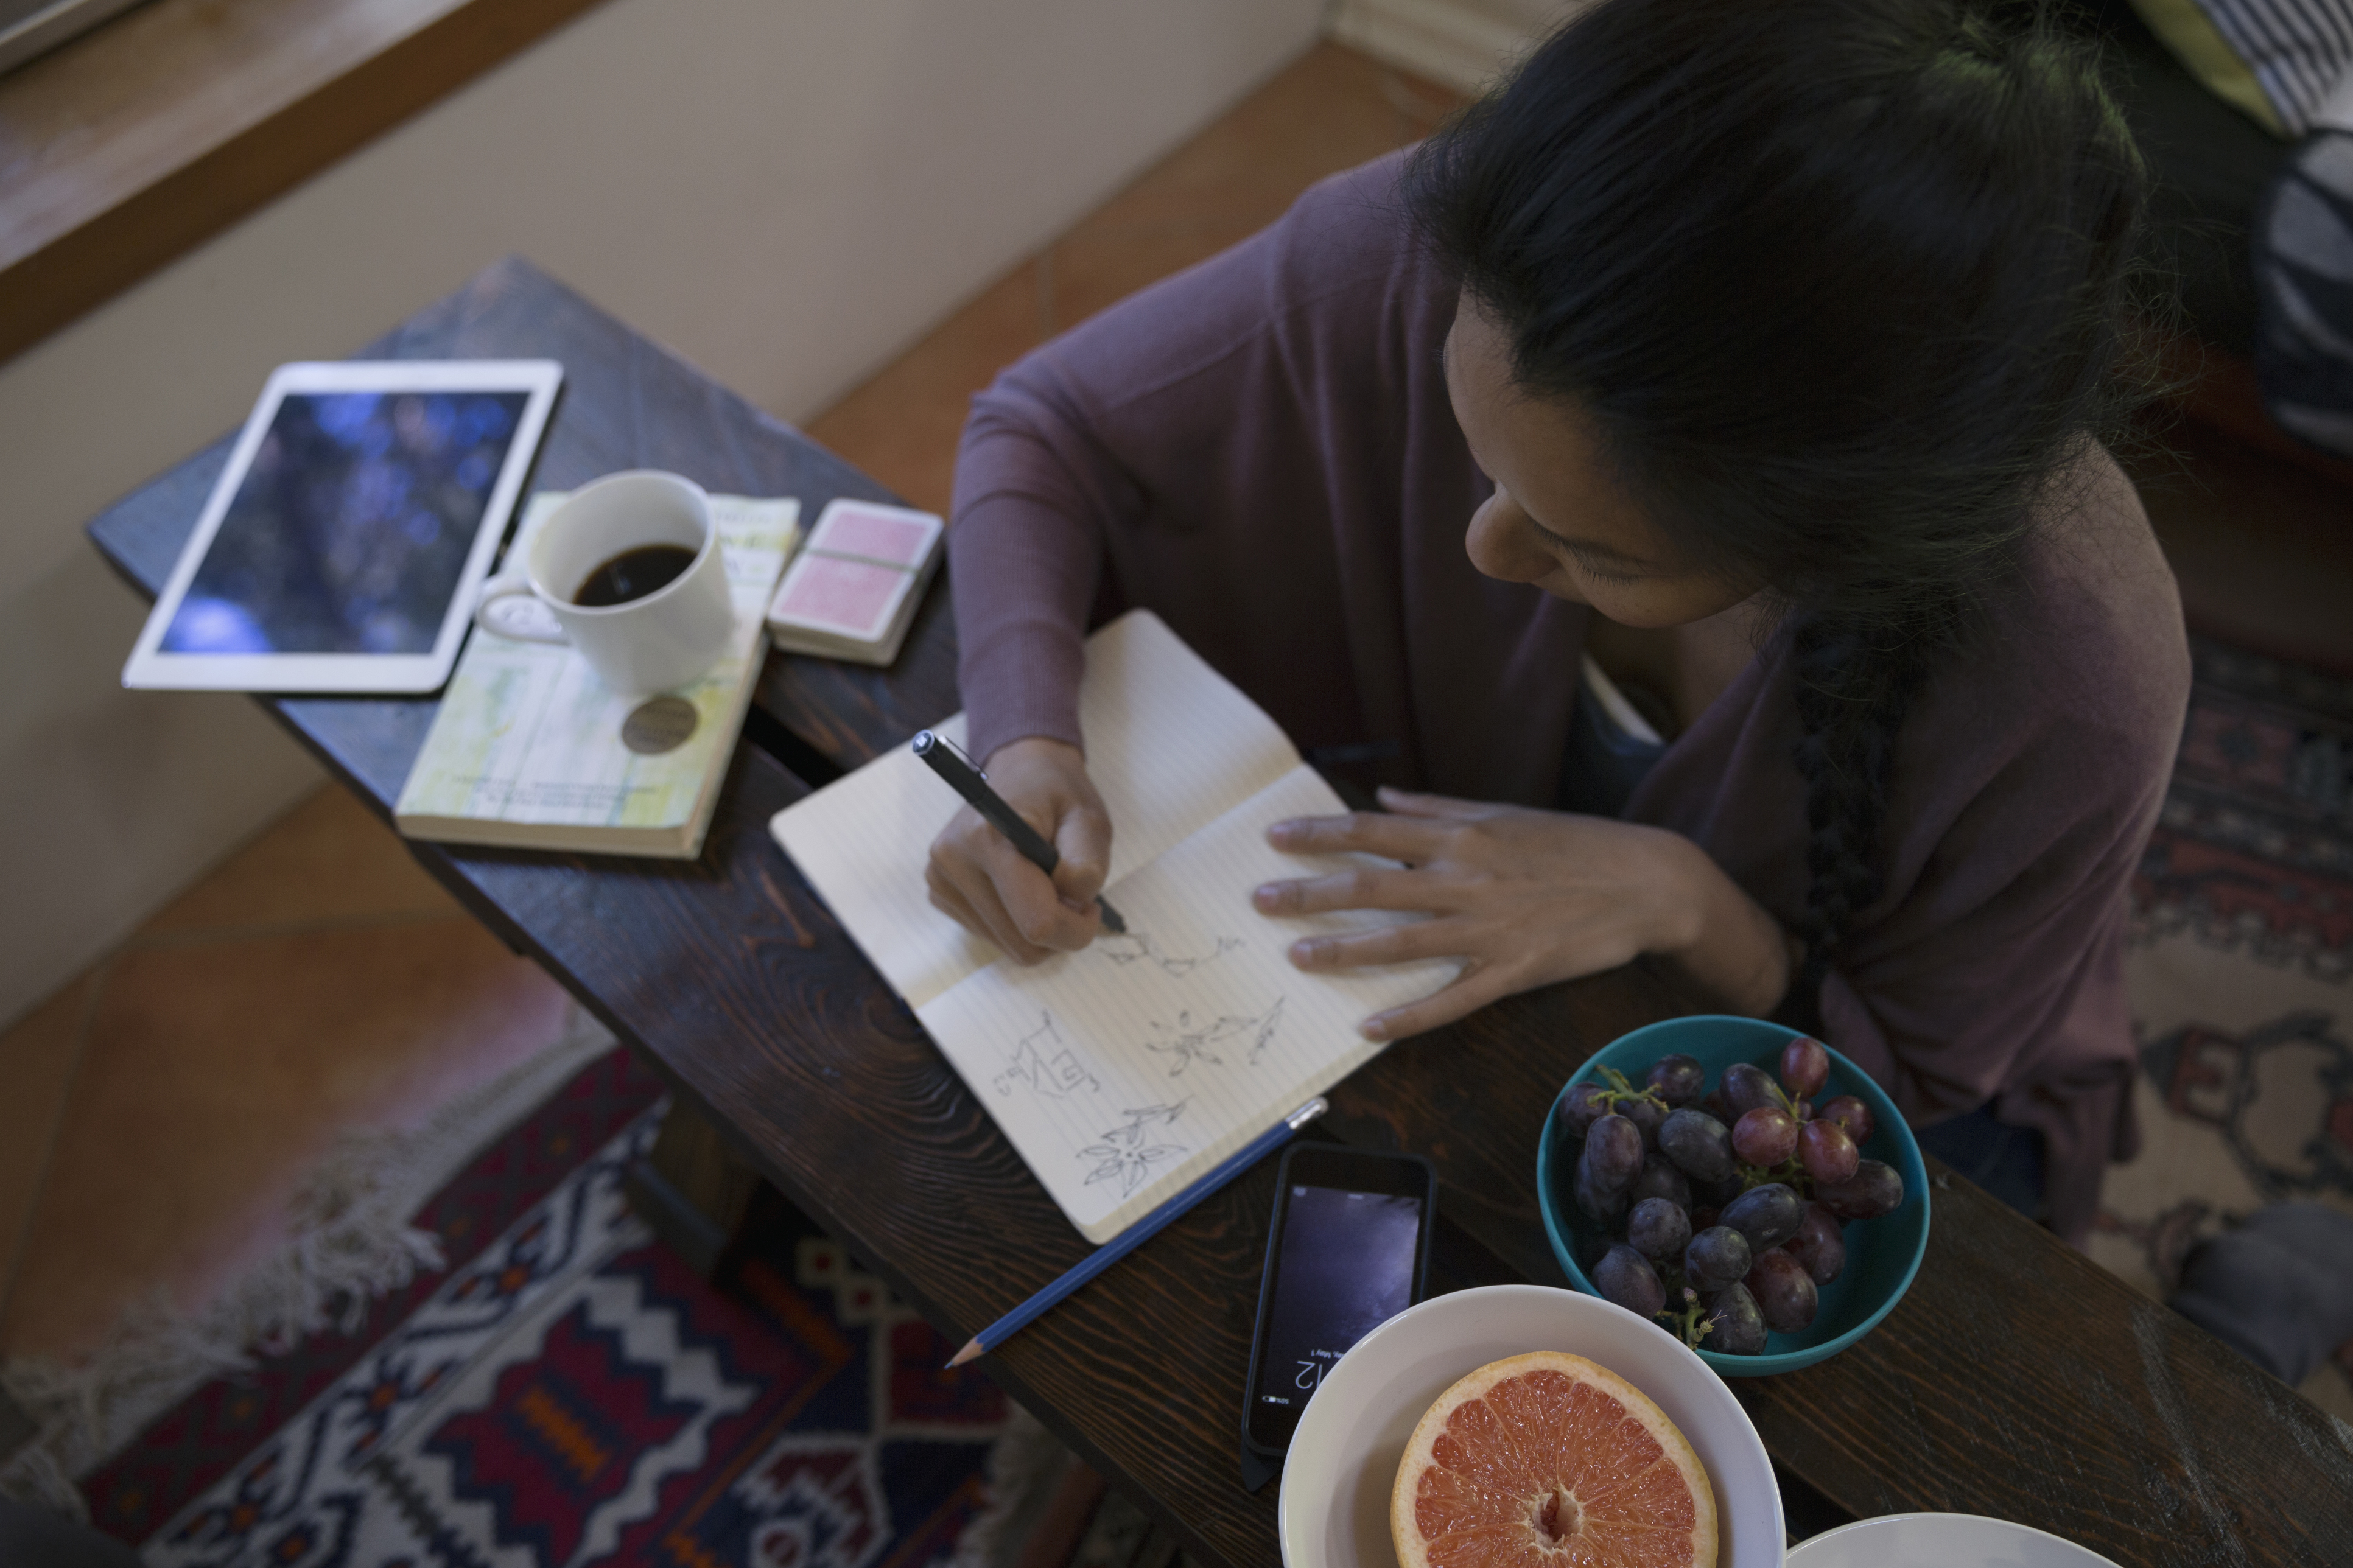 Woman sketching in journal in living room